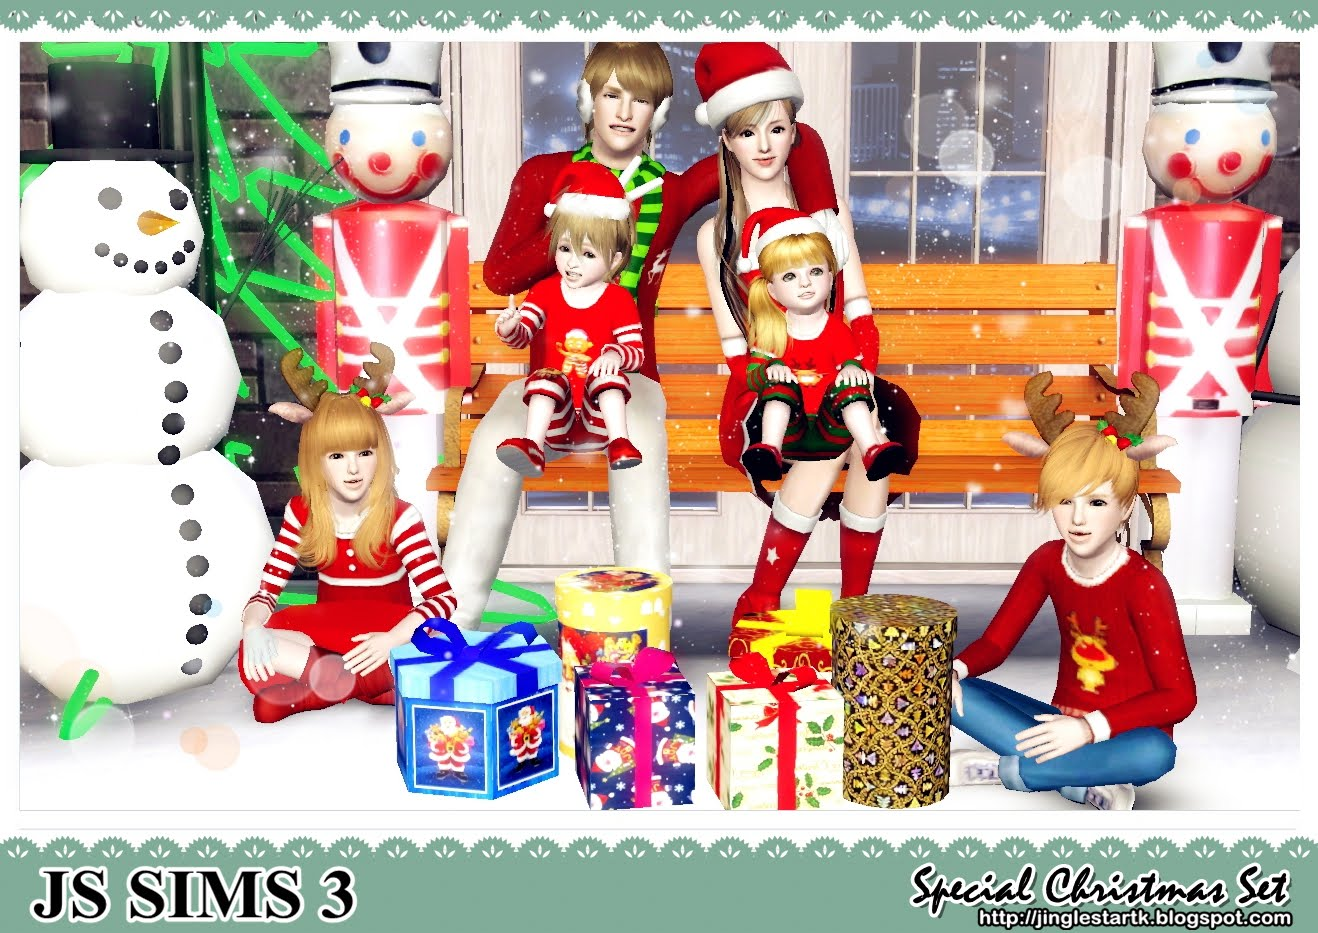 Sims 4 Christmas Poses.Merry Christmas Special Christmas Set For You By Js Sims 3